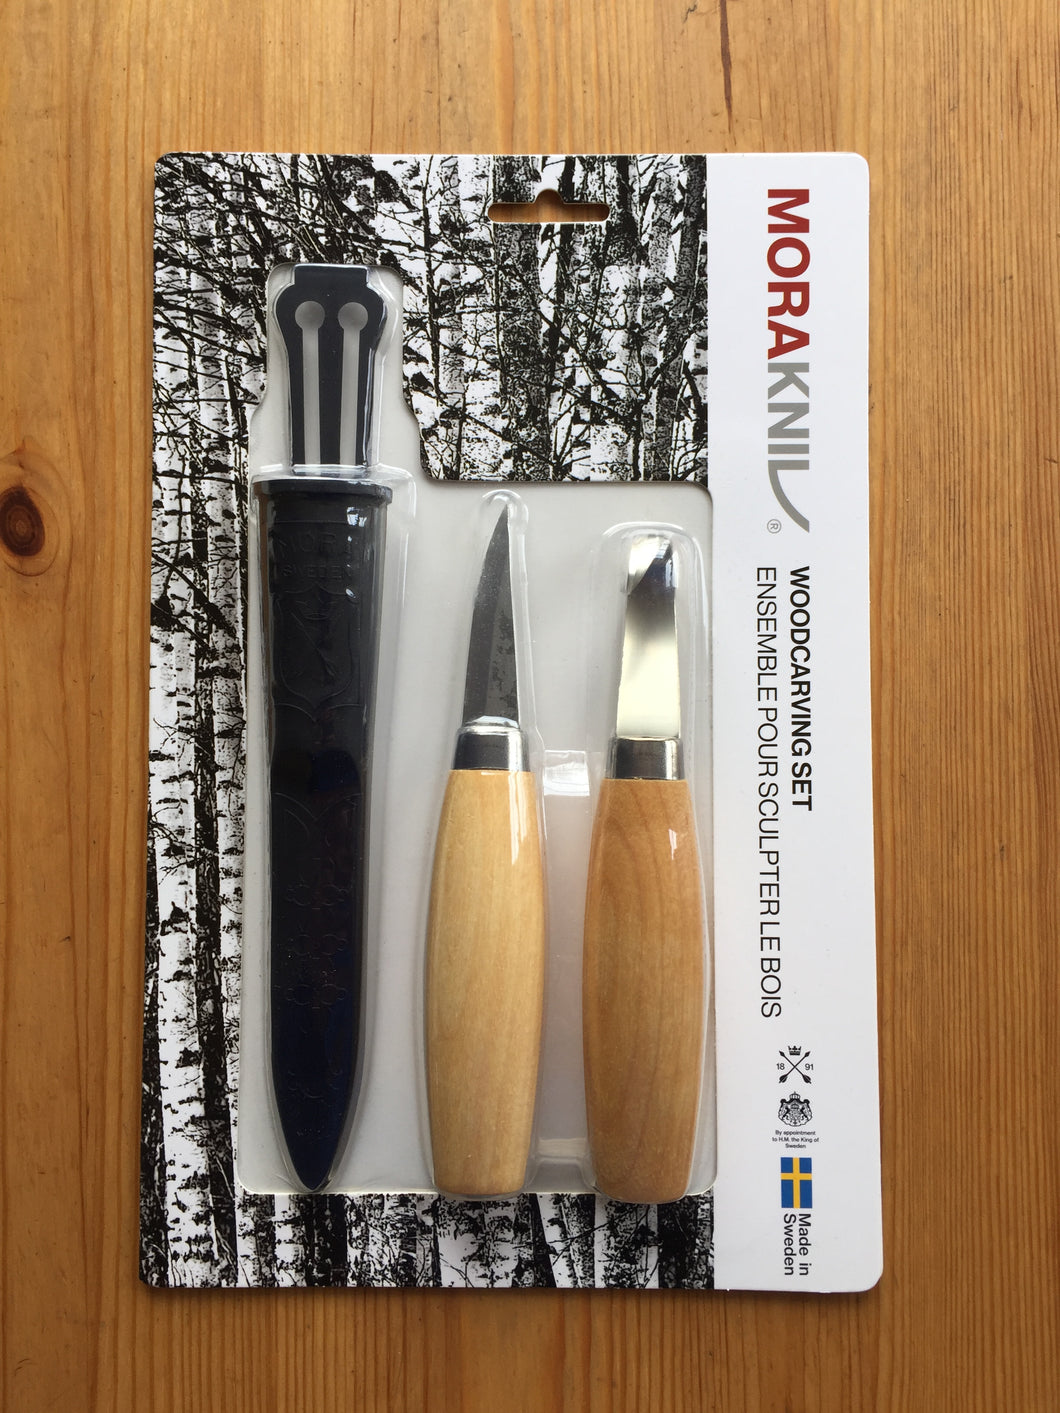 Mora Carving Knife Set